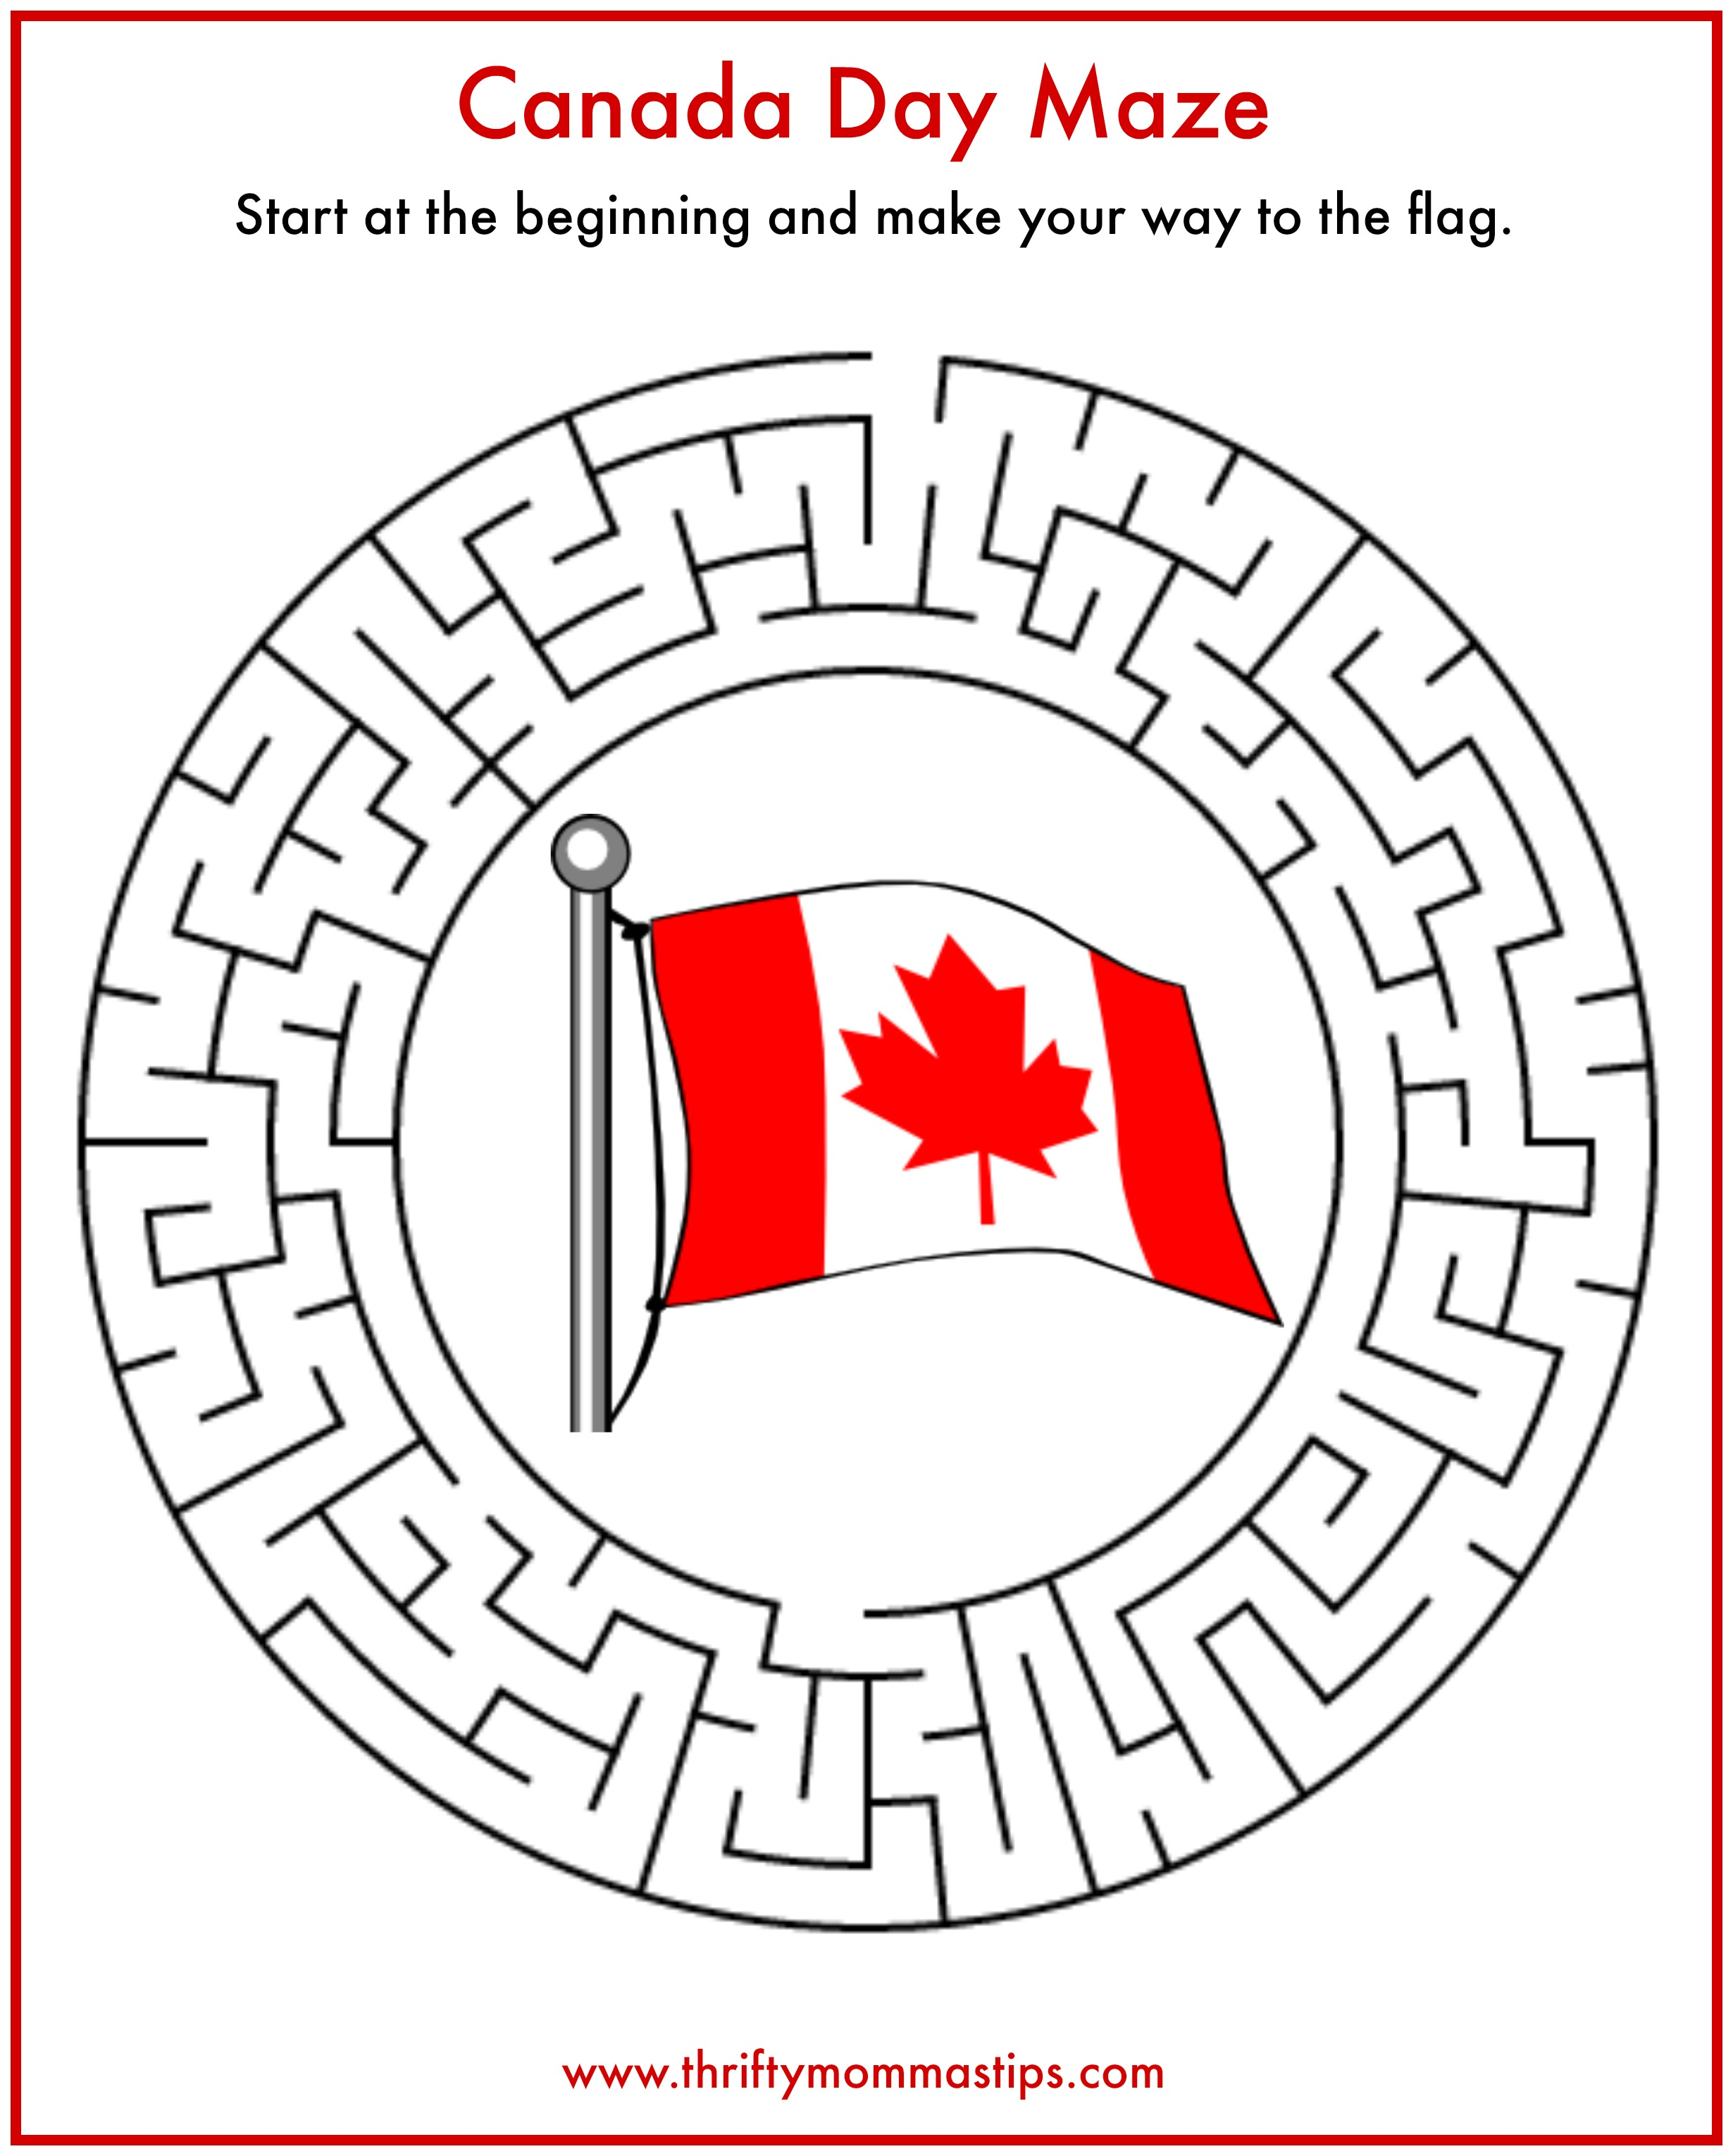 Canada Day Maze Printable on Pictures On My Family Worksheets For Kindergarten Easy